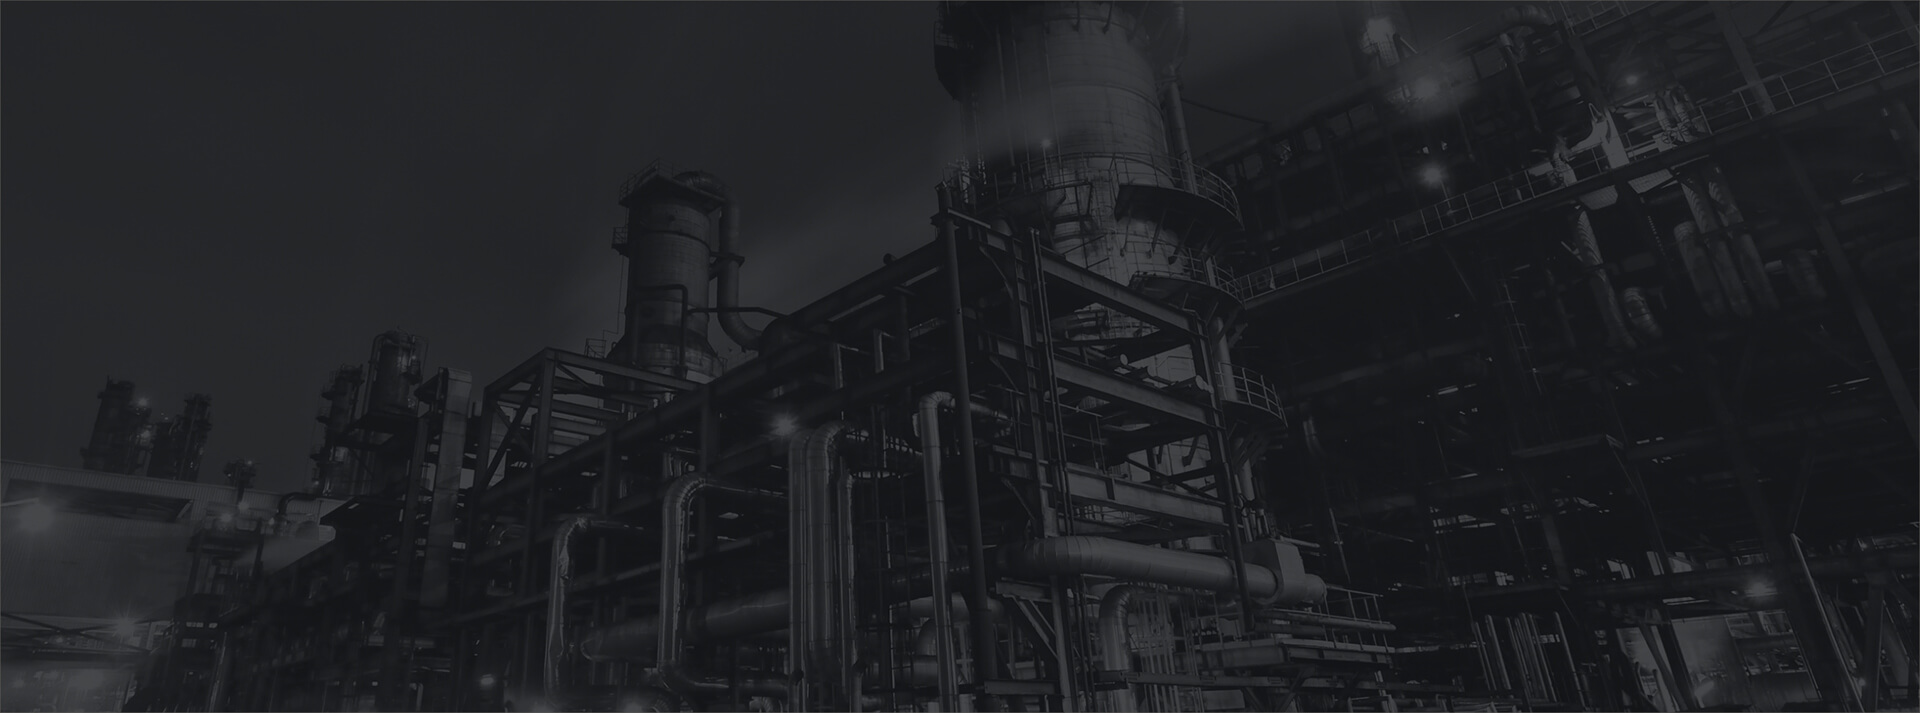 chemical industry web design